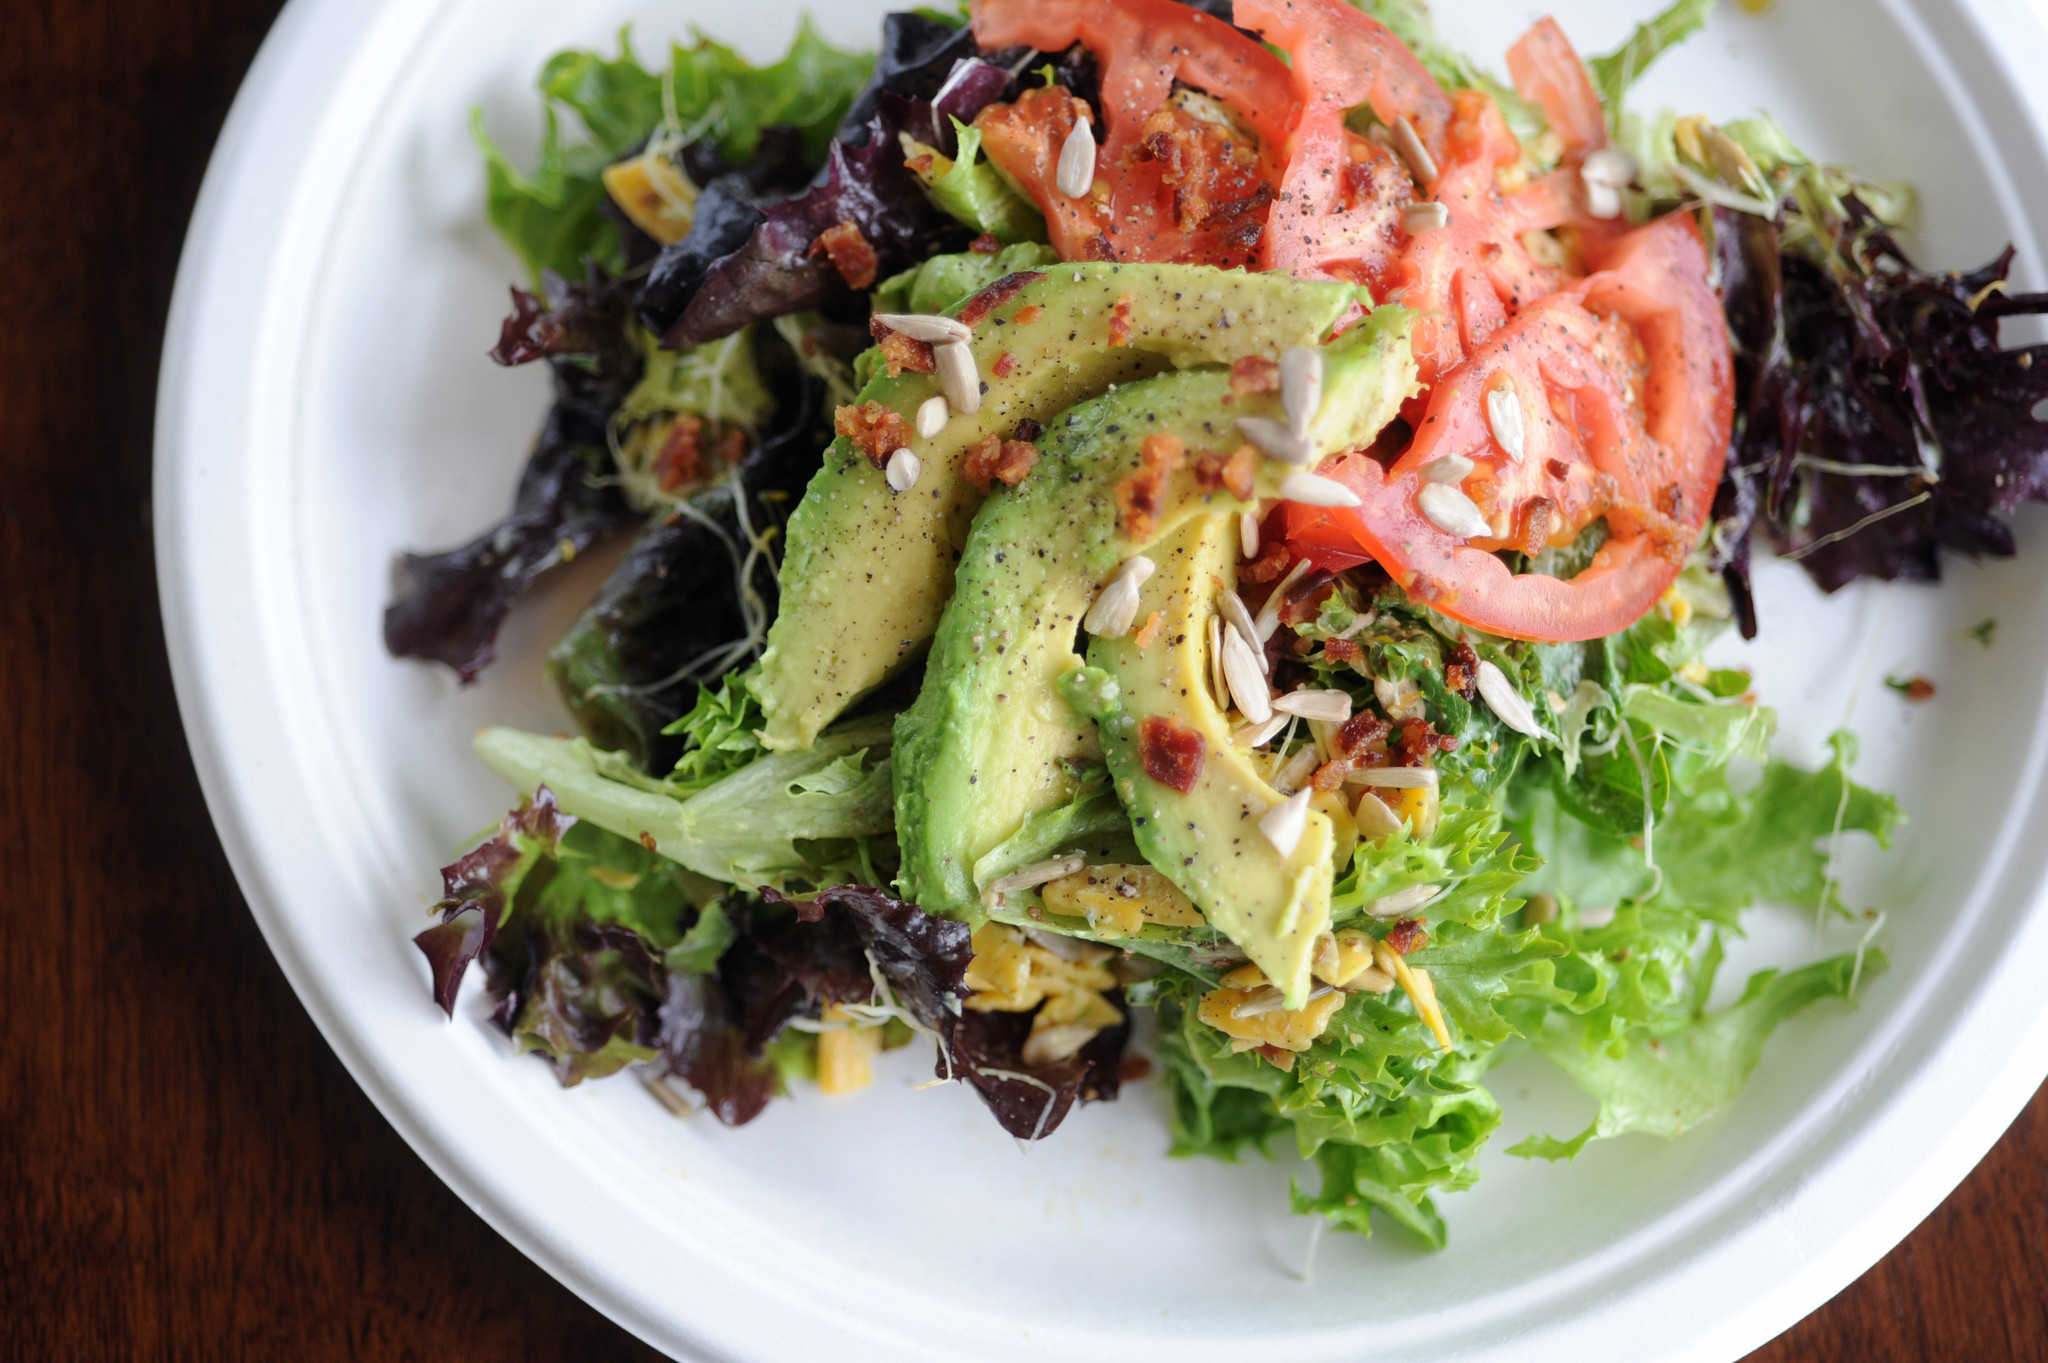 Chef and co-owner Michael White of Fox & Fern Cafe in Forest Hill created this West Coast-inspired salad.